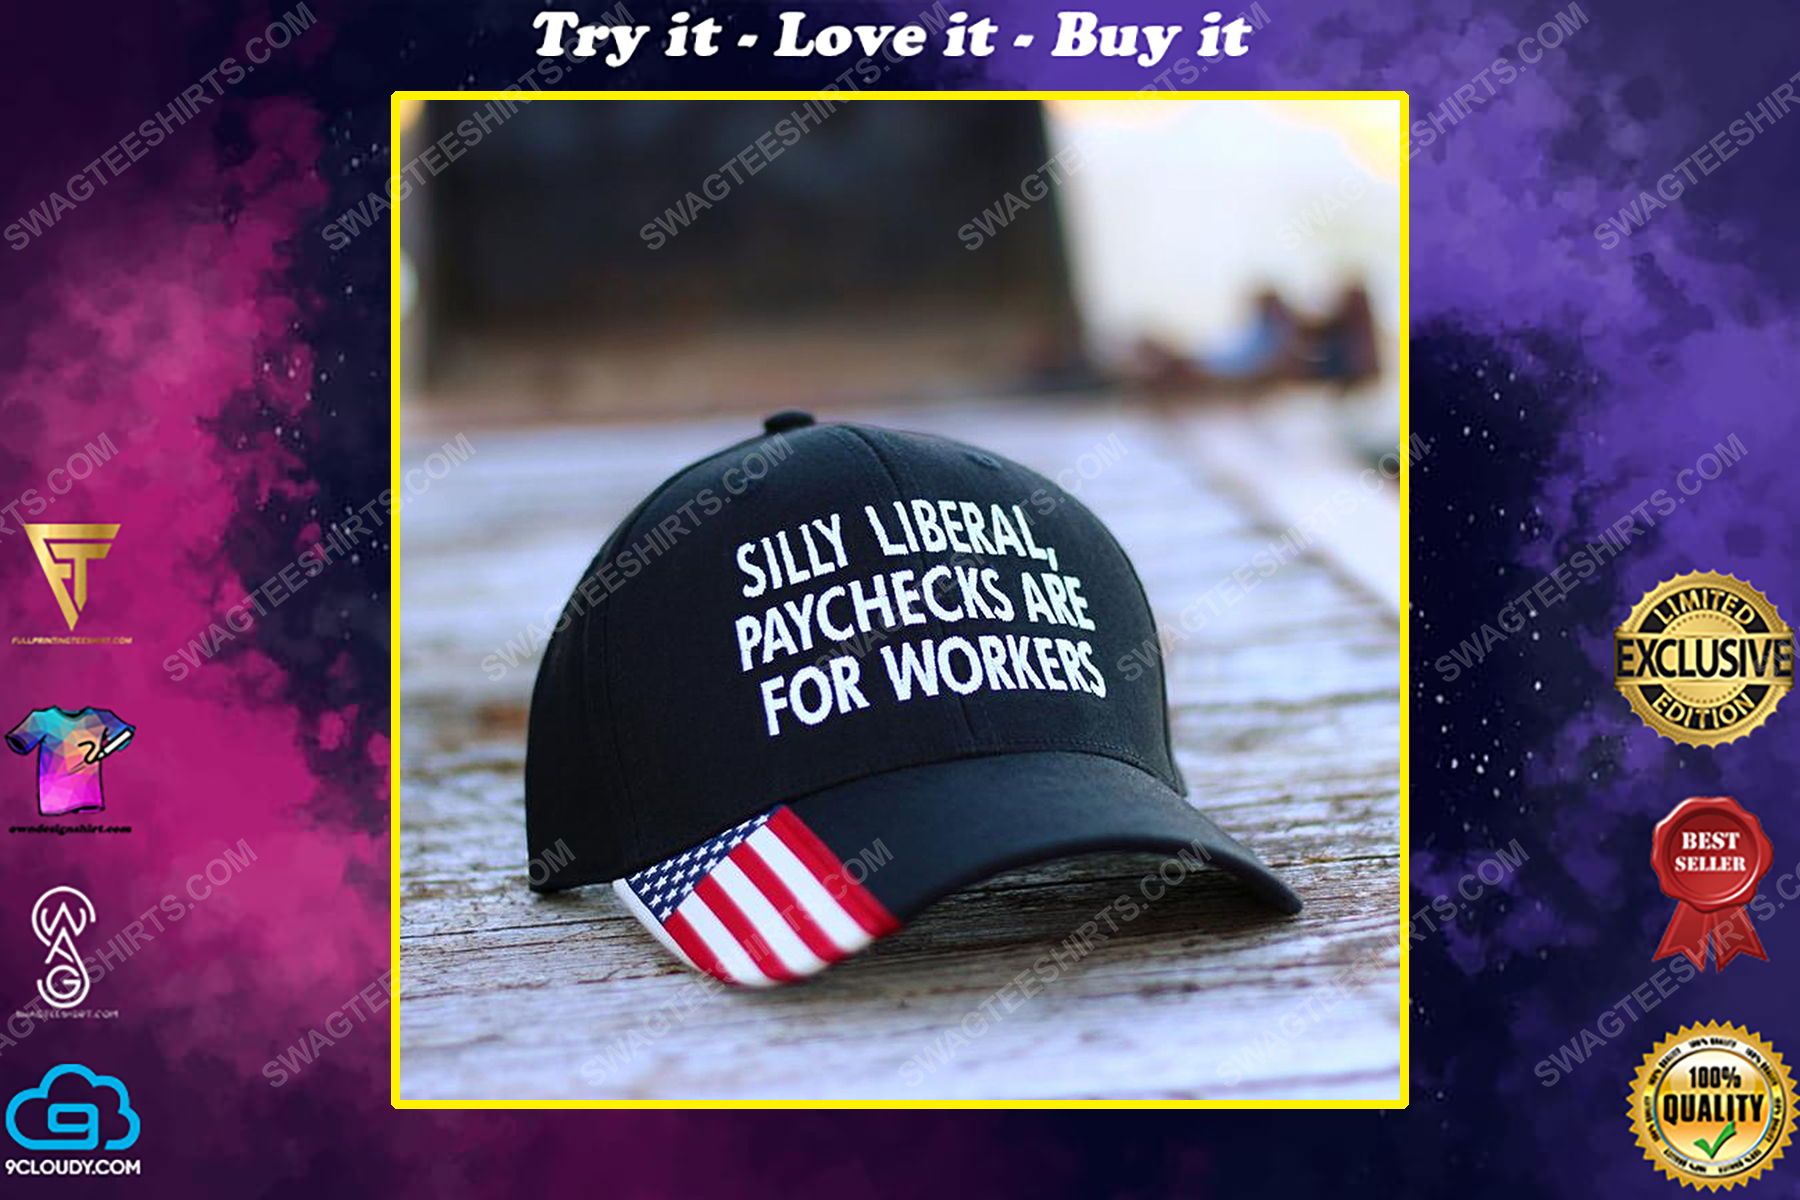 Silly liberal paychecks are for workers full print classic hat